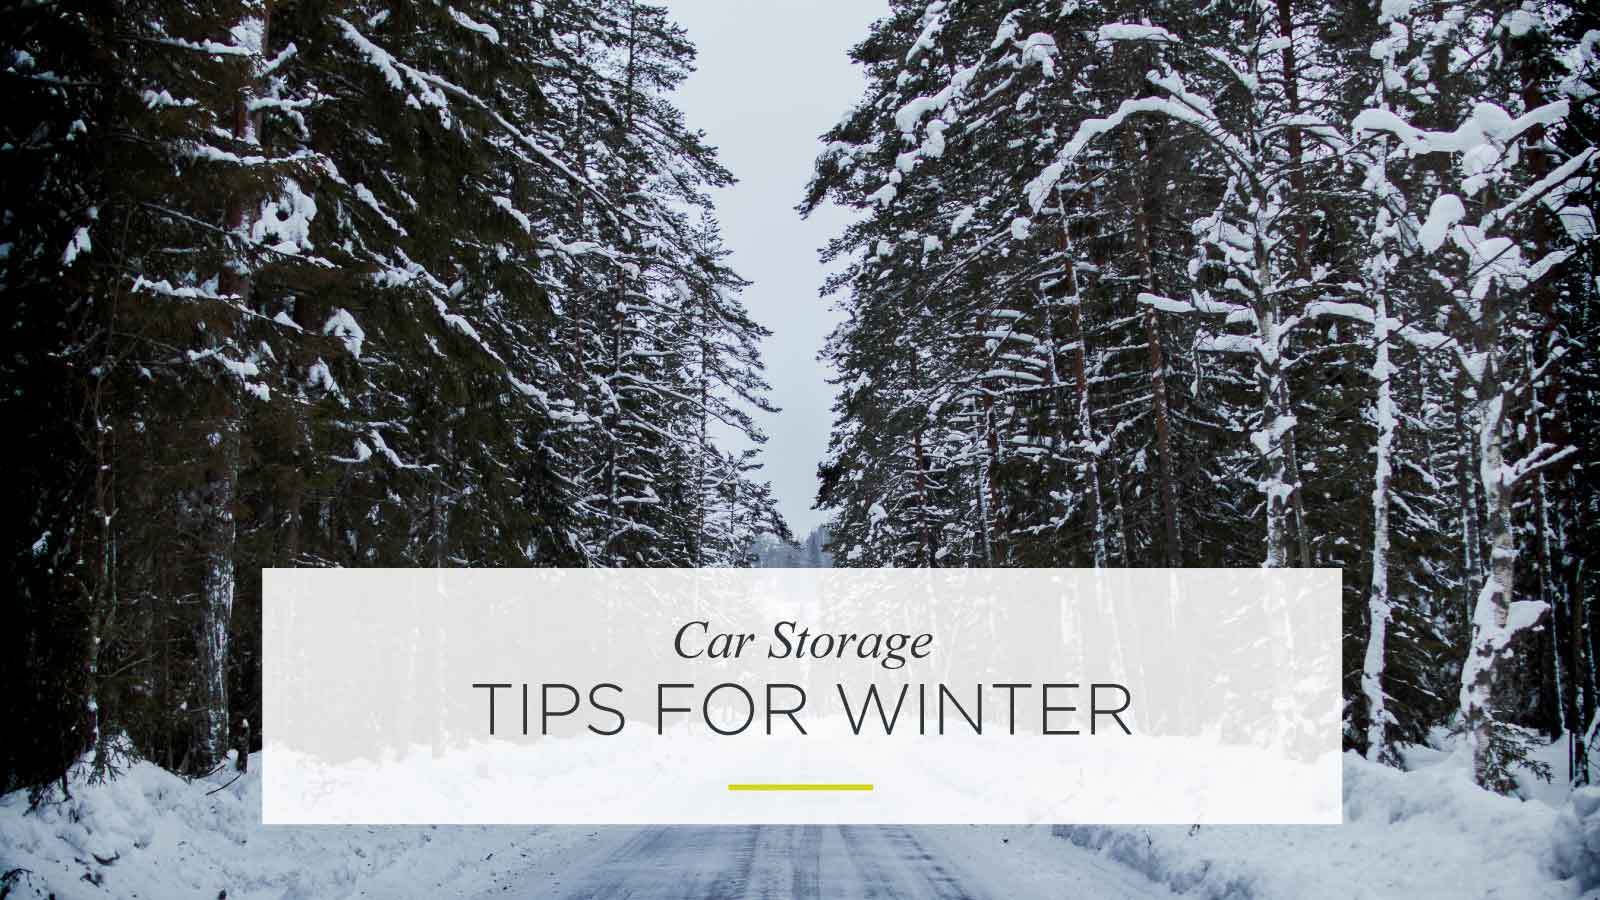 Car storage tips for winter